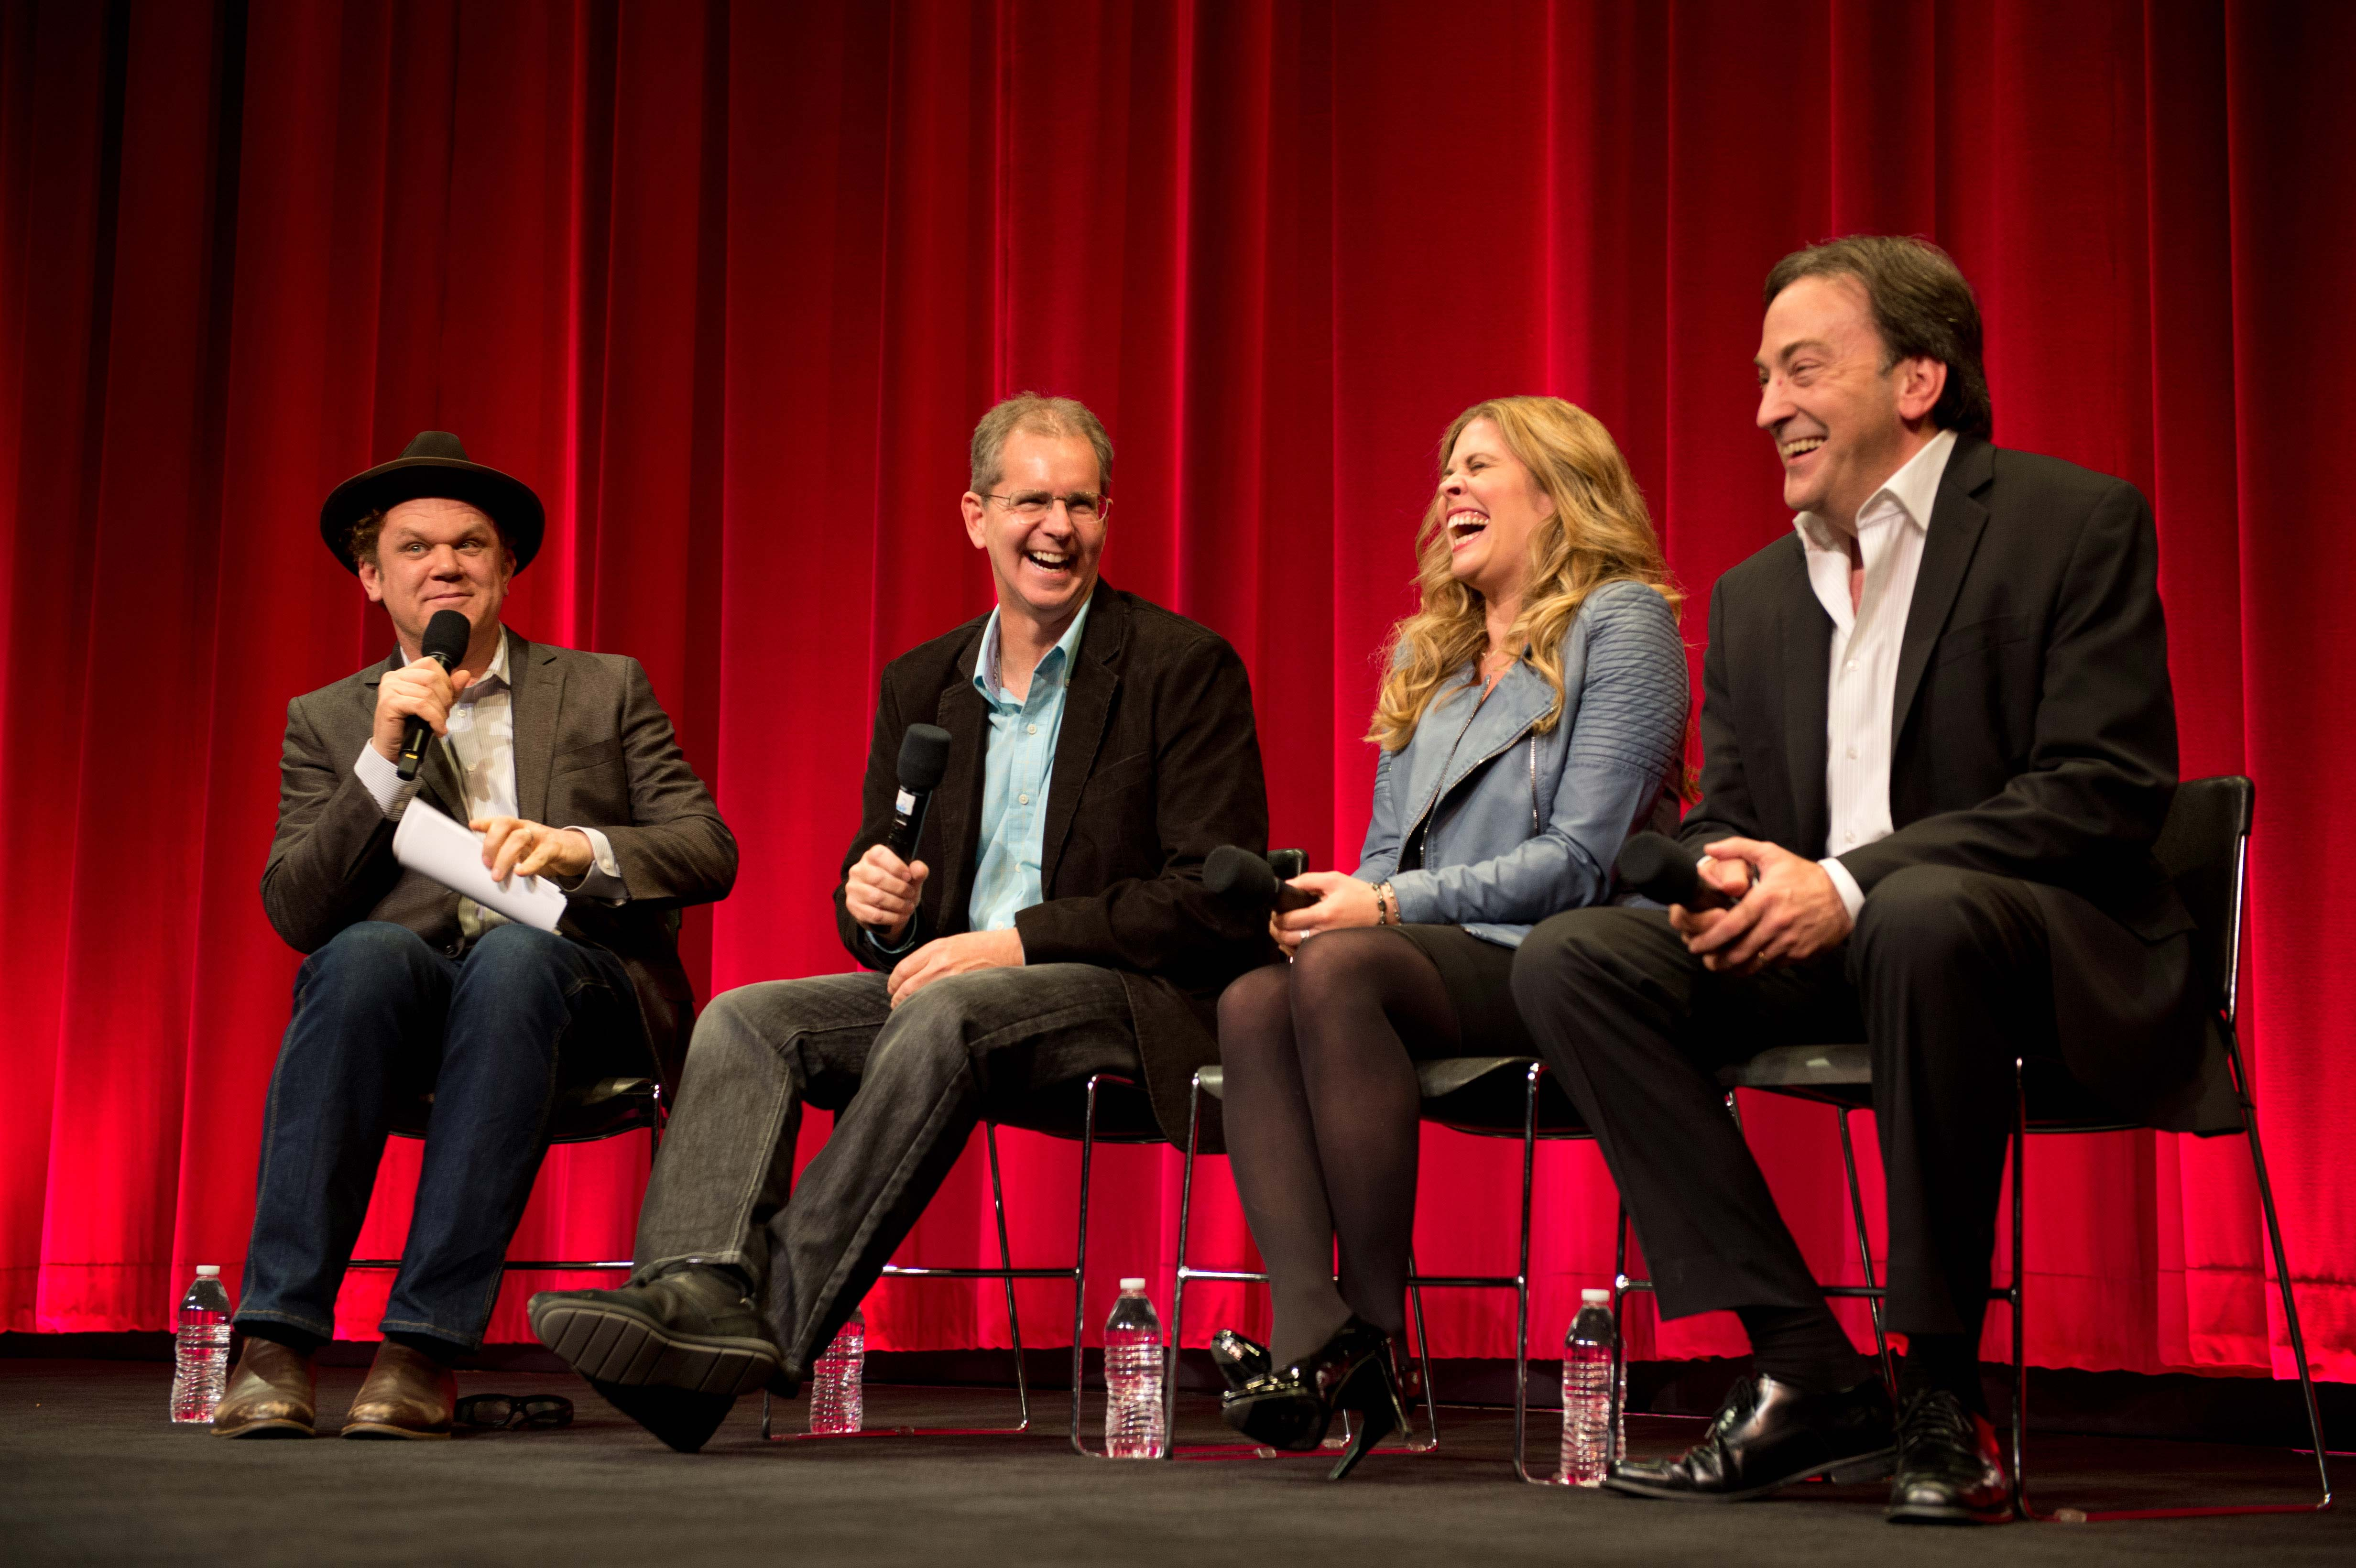 """John C. Reilly, host of """"Animated Features 2014,"""" with filmmakers of Frozen"""